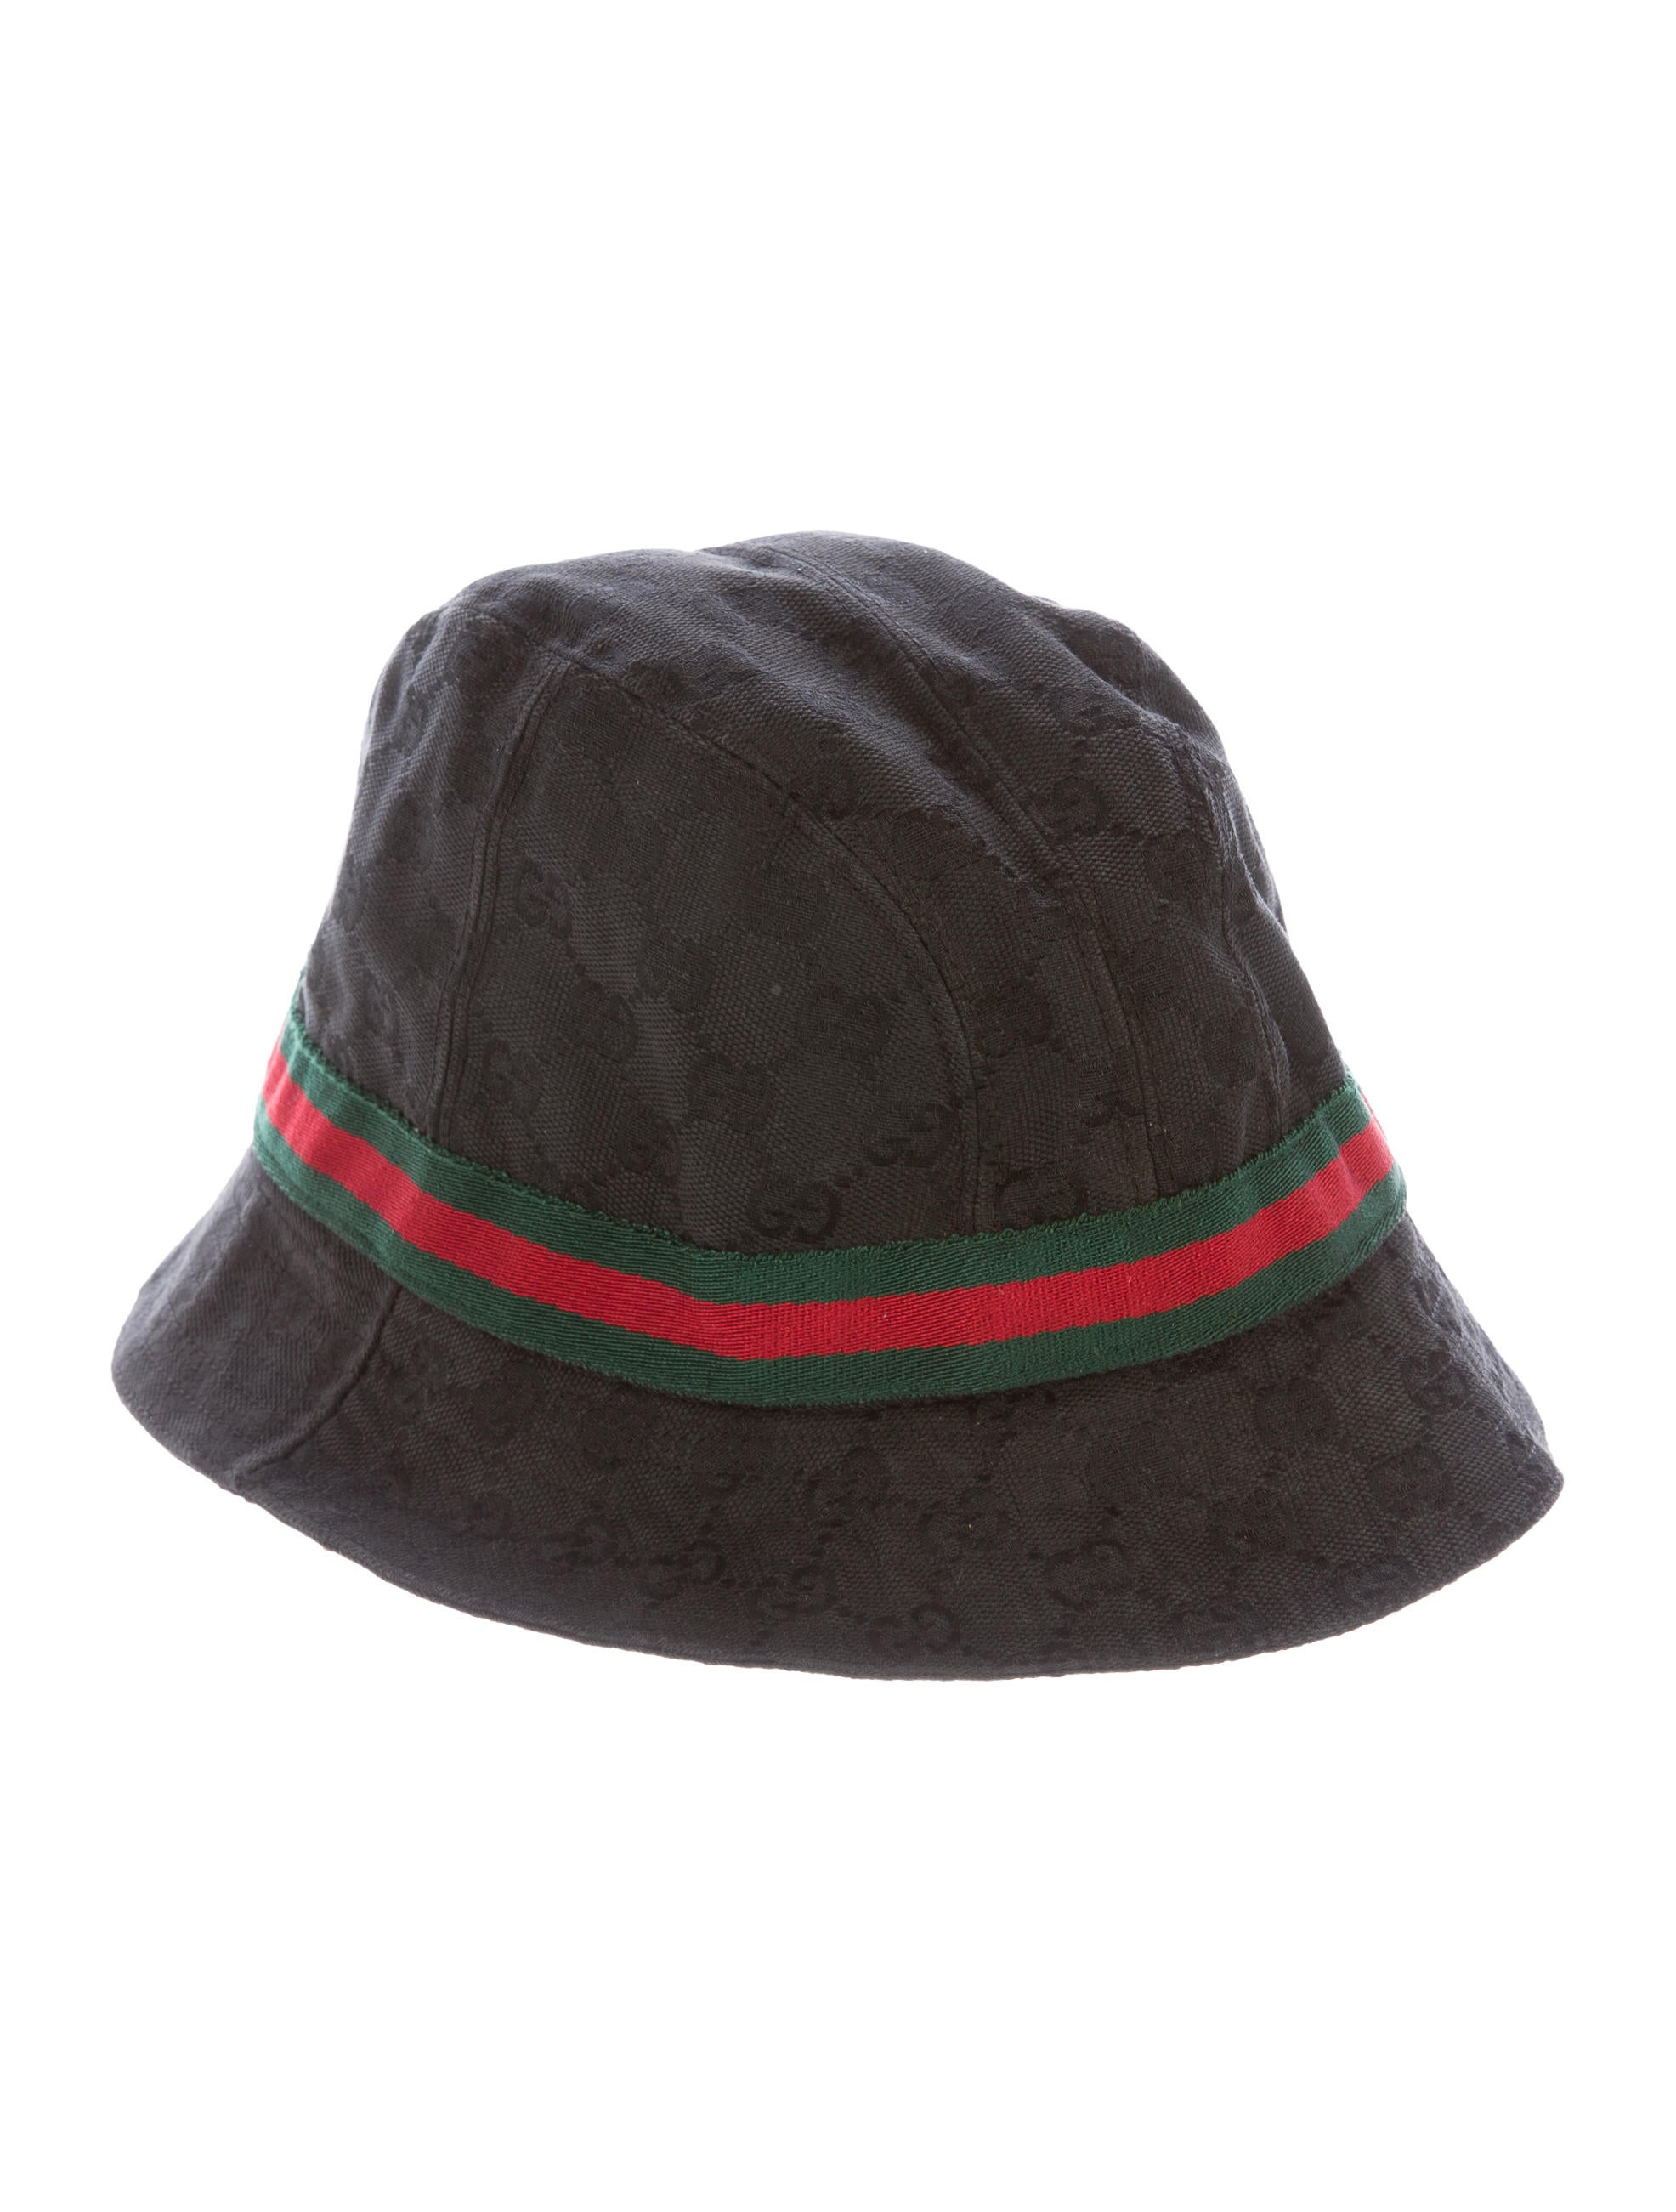 20d4660be01ff Gucci GG Canvas Bucket Hat - Accessories - GUC134808